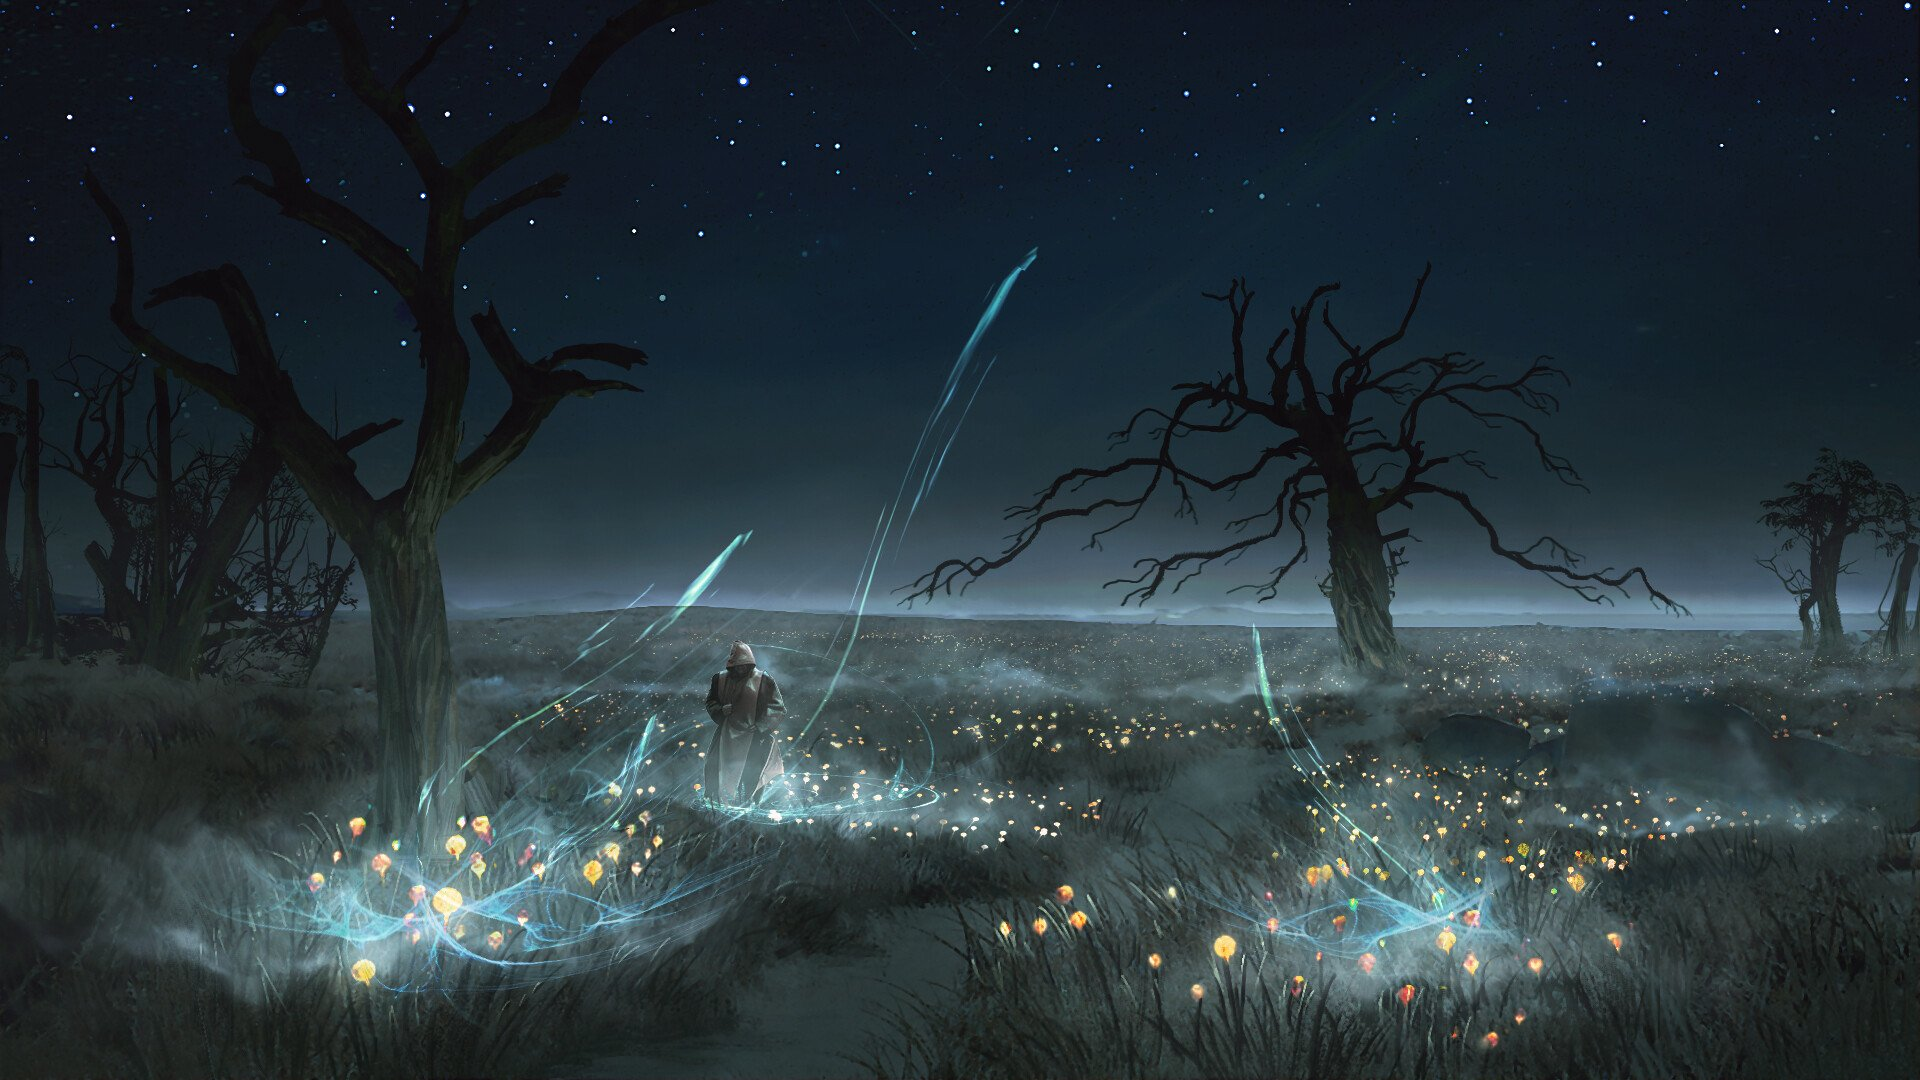 Grave Of The Fireflies Hd Wallpaper Background Image 1920x1080 Id 1062317 Wallpaper Abyss